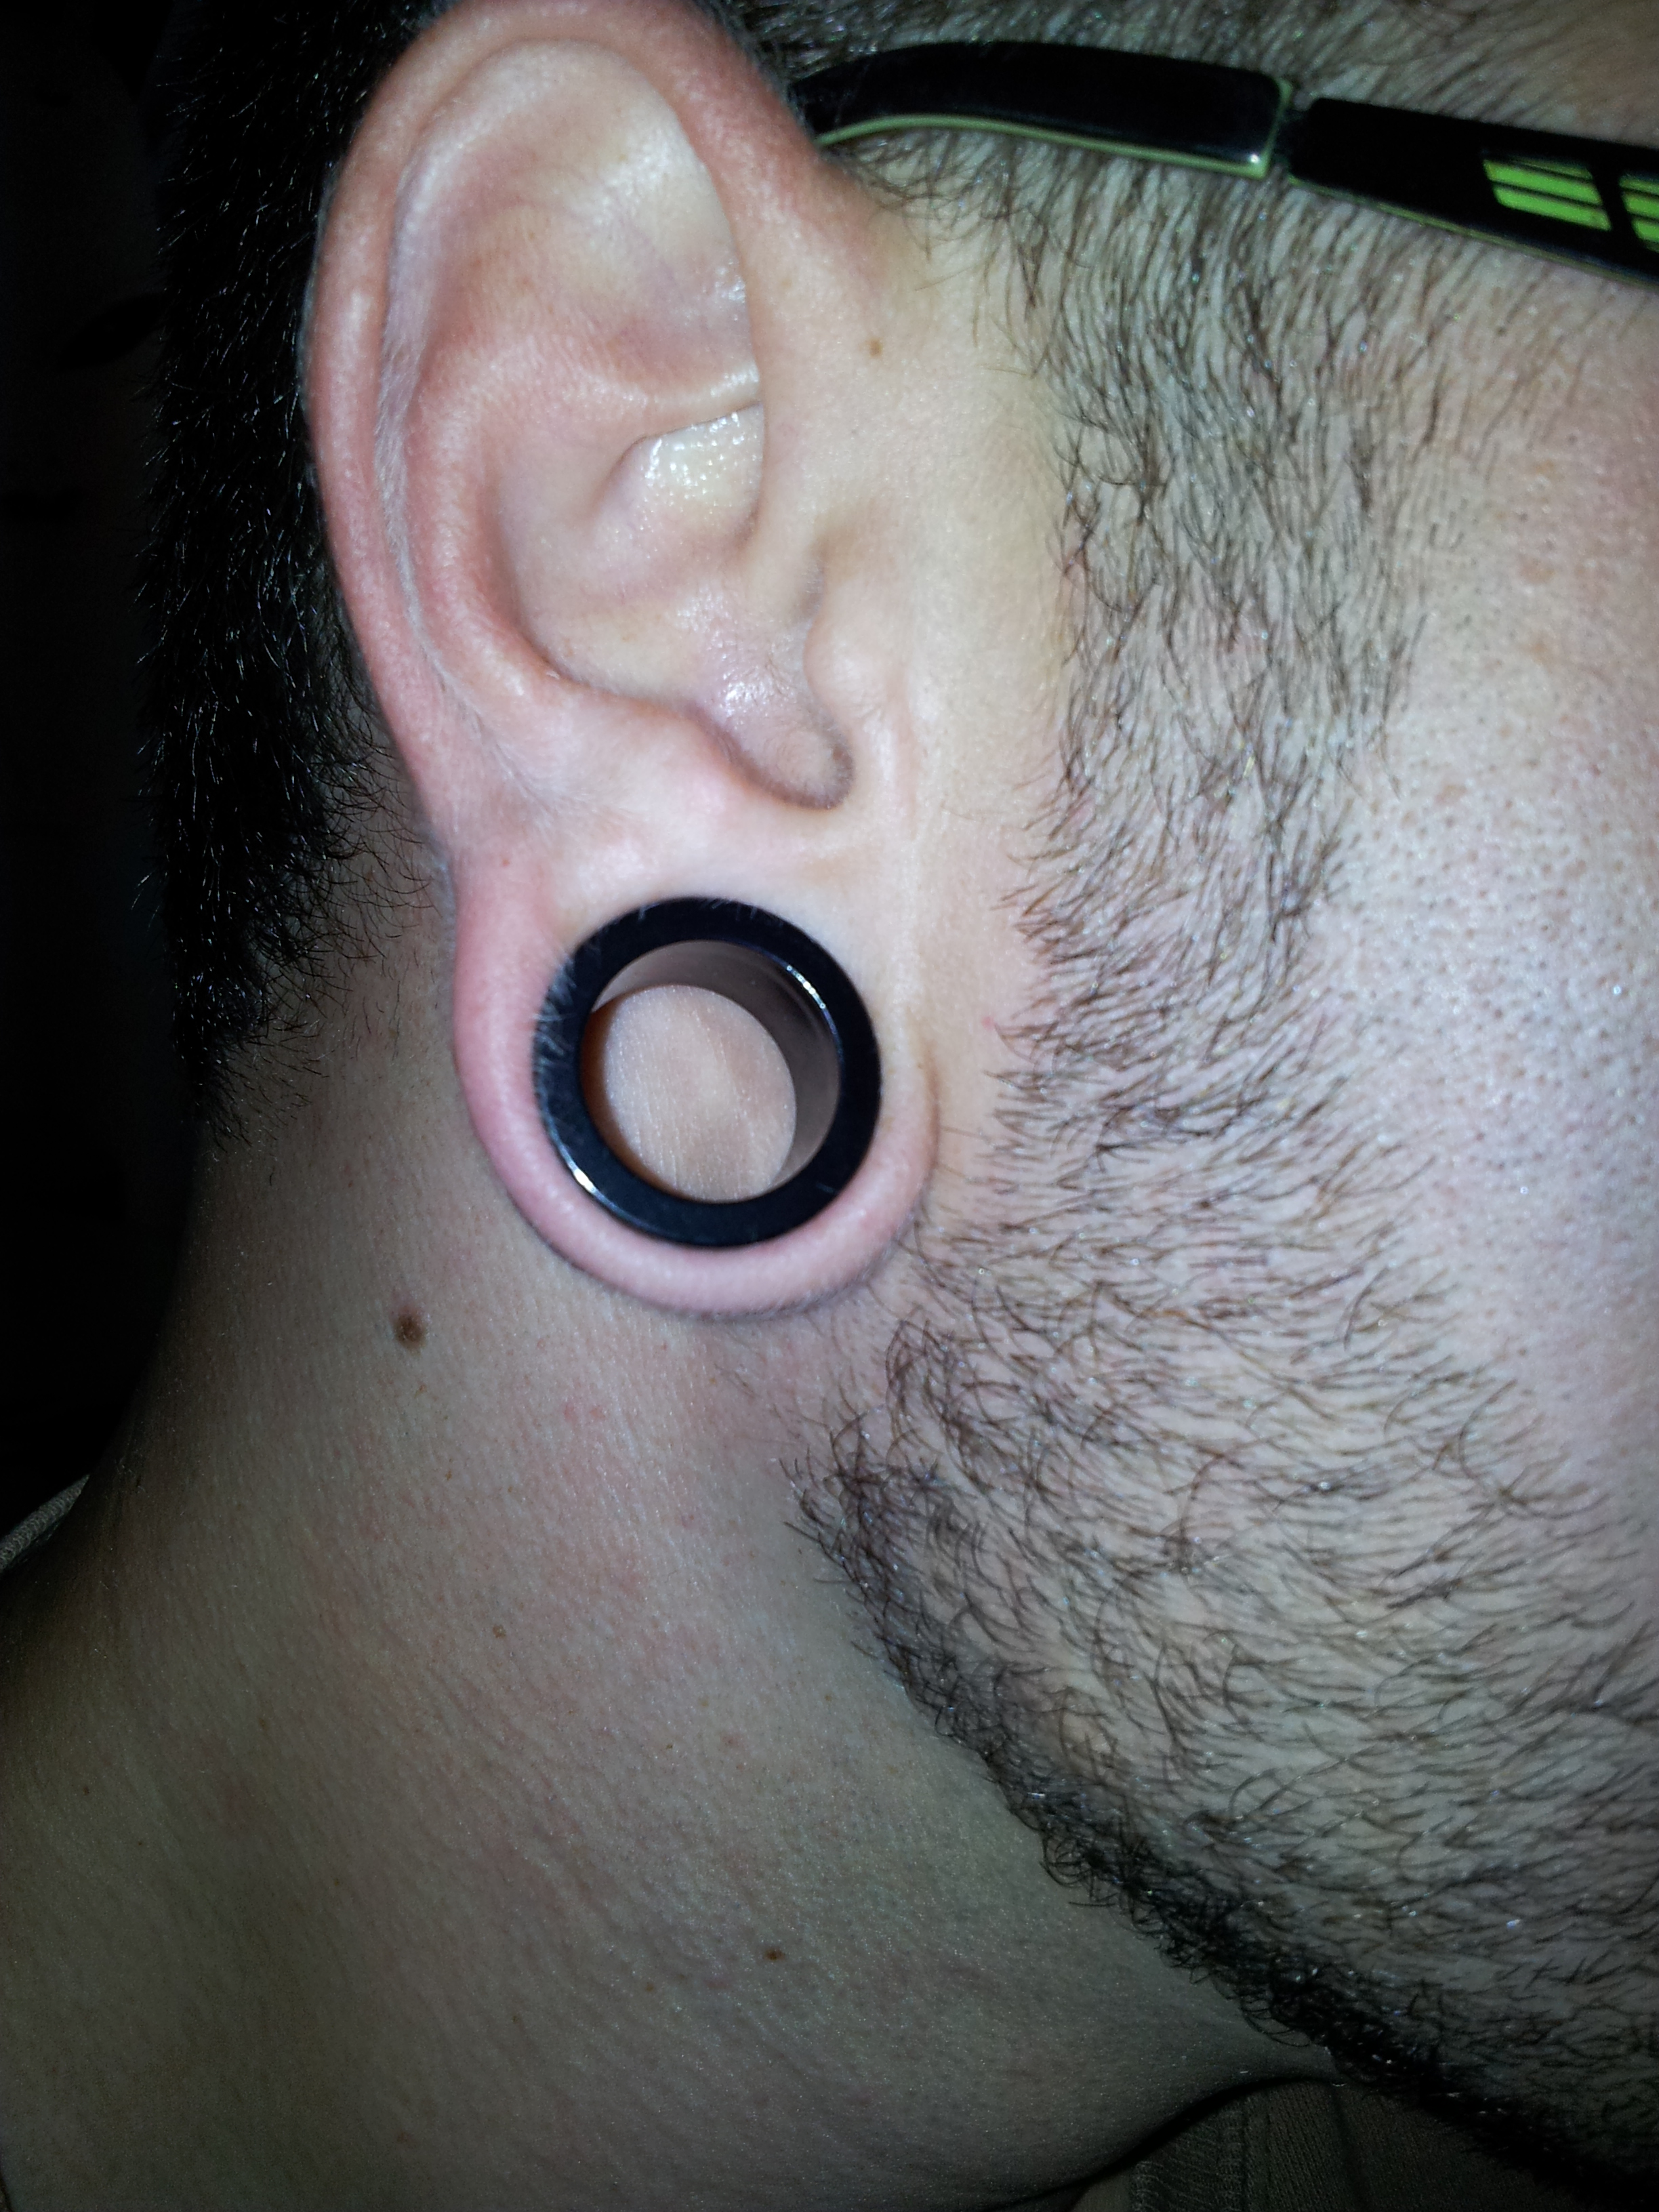 I make fake gauges and ear plugs in size from 4g to 58